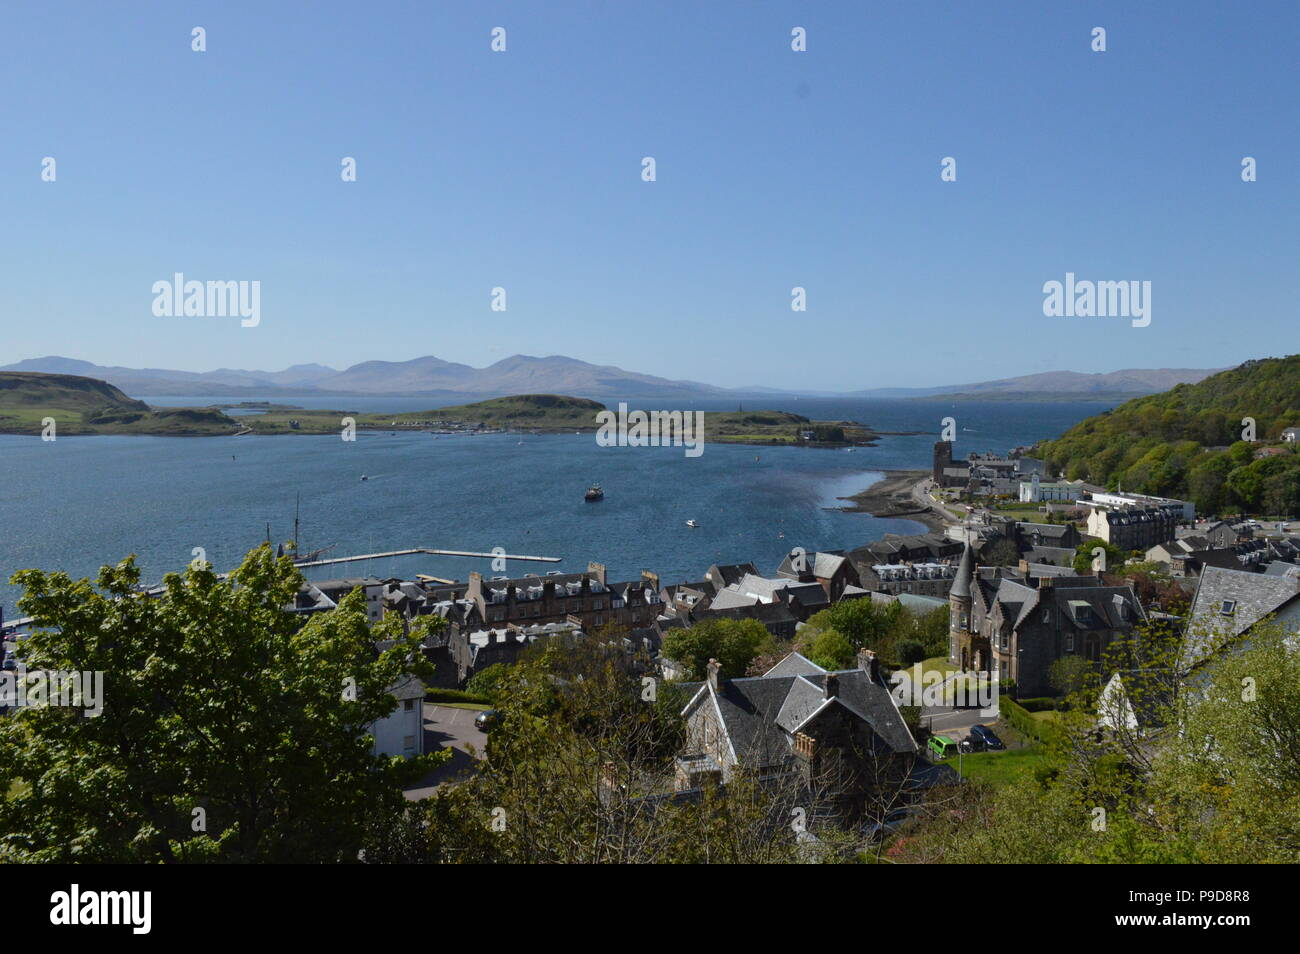 View of Isles of Mull and Kerrera from McCaig's Tower, Oban, Scotland. - Stock Image